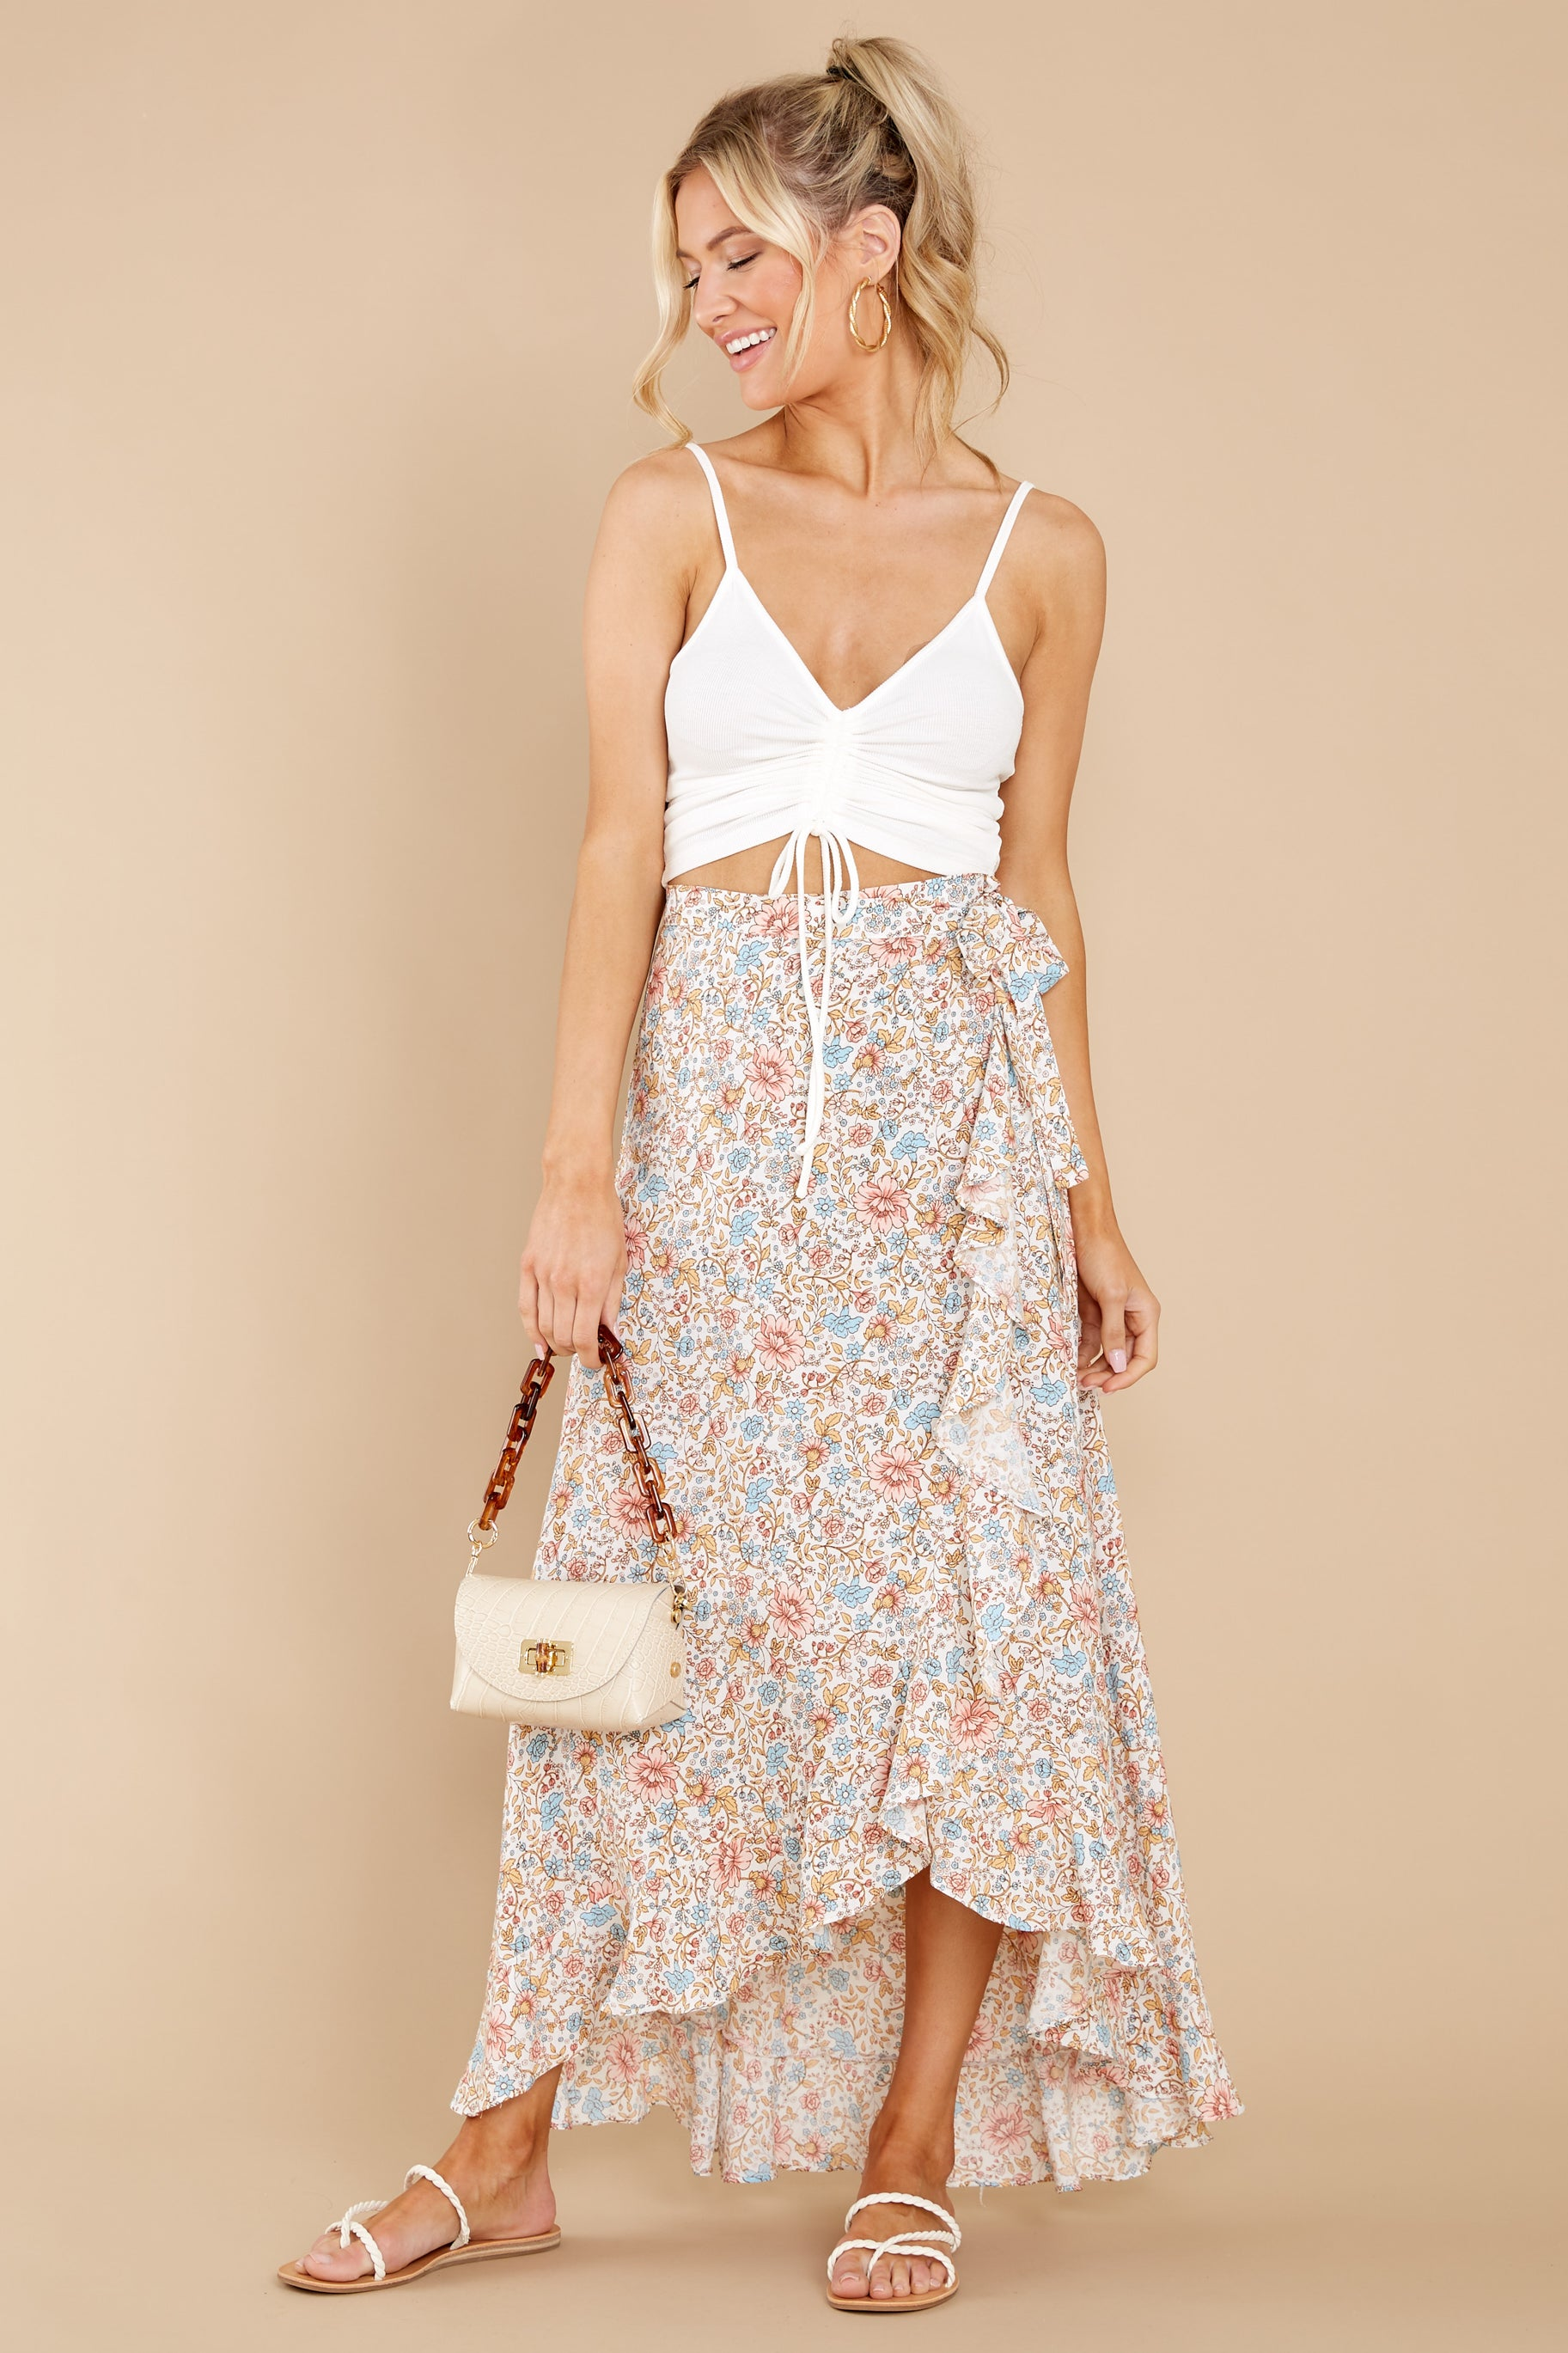 5 Boardwalk Stroll White Floral Print Skirt at reddress.com